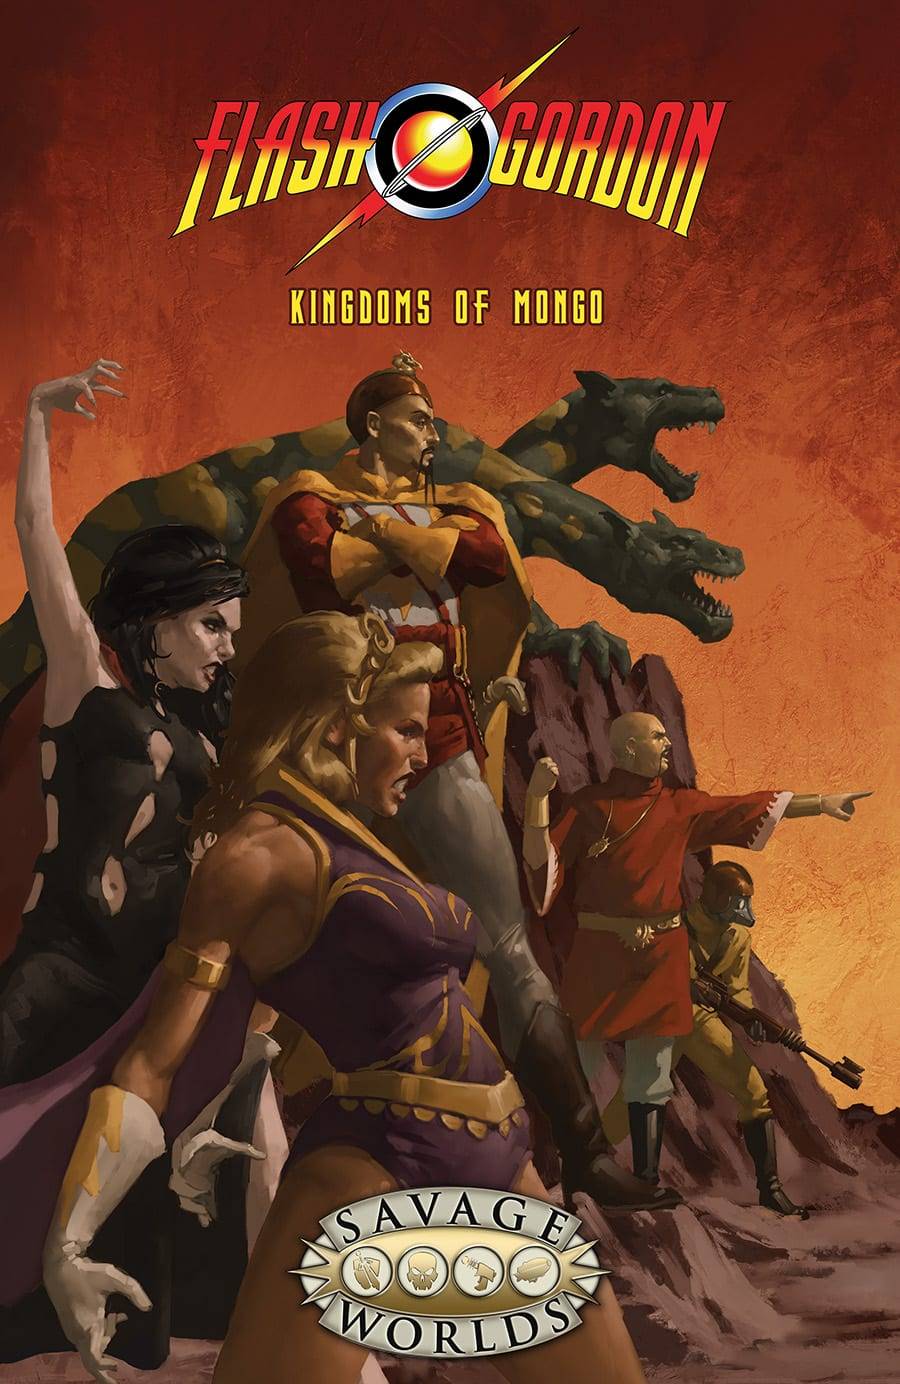 Flash Gordon RPG Kingdoms of Mongo Limited Edition Hardcover -  Studio 2 Publishing